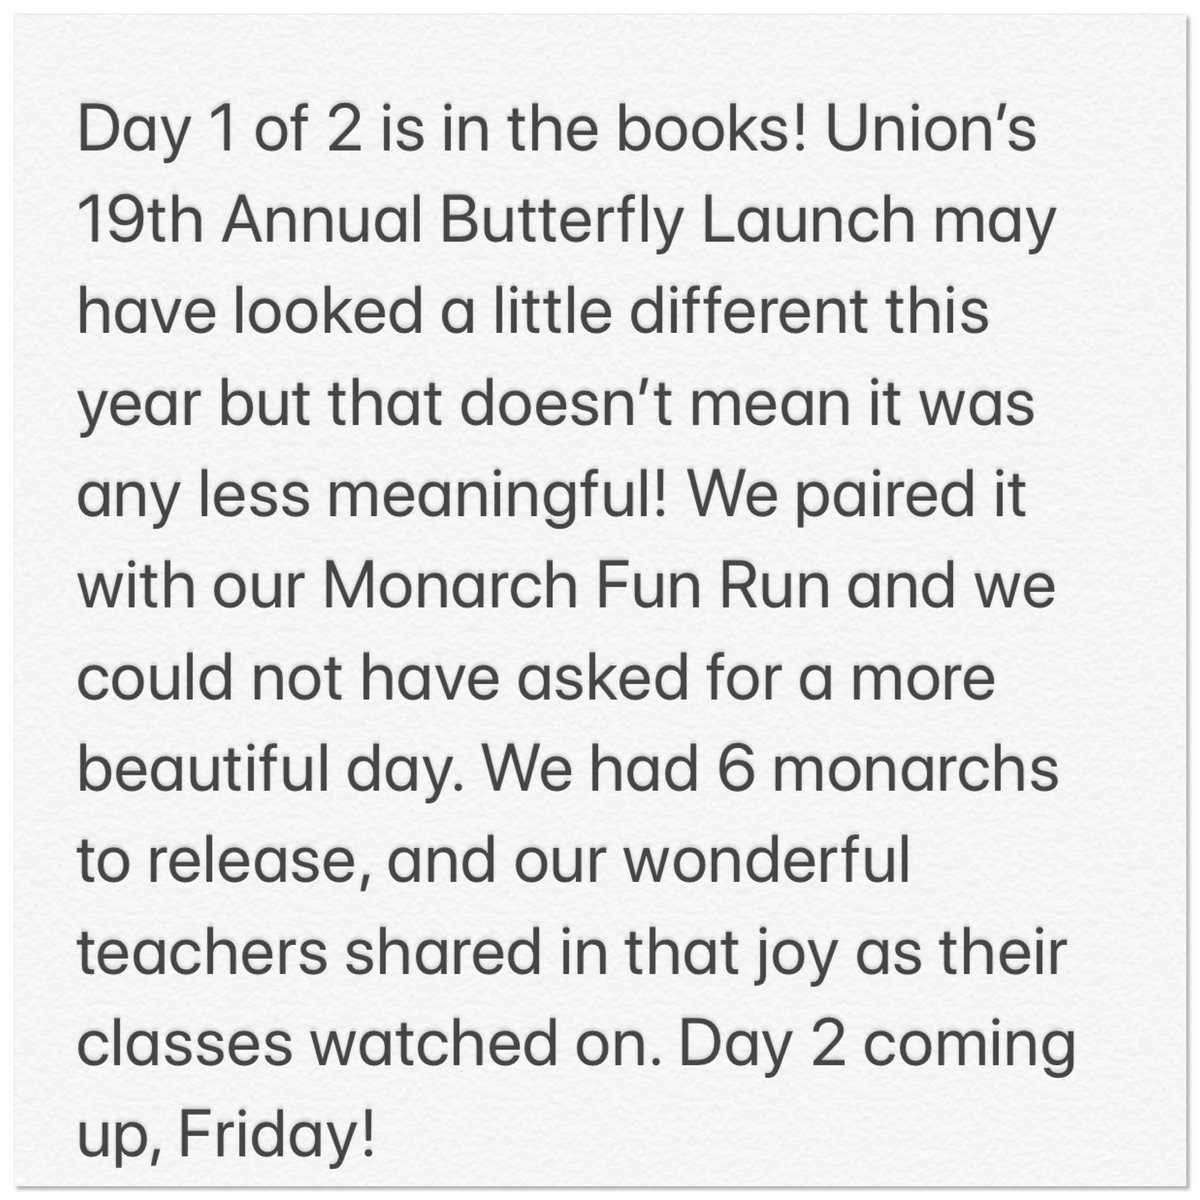 #WeAreUnionSTEAM #Monarchs #LoveOurSchool https://t.co/pi4CpIU0Nt